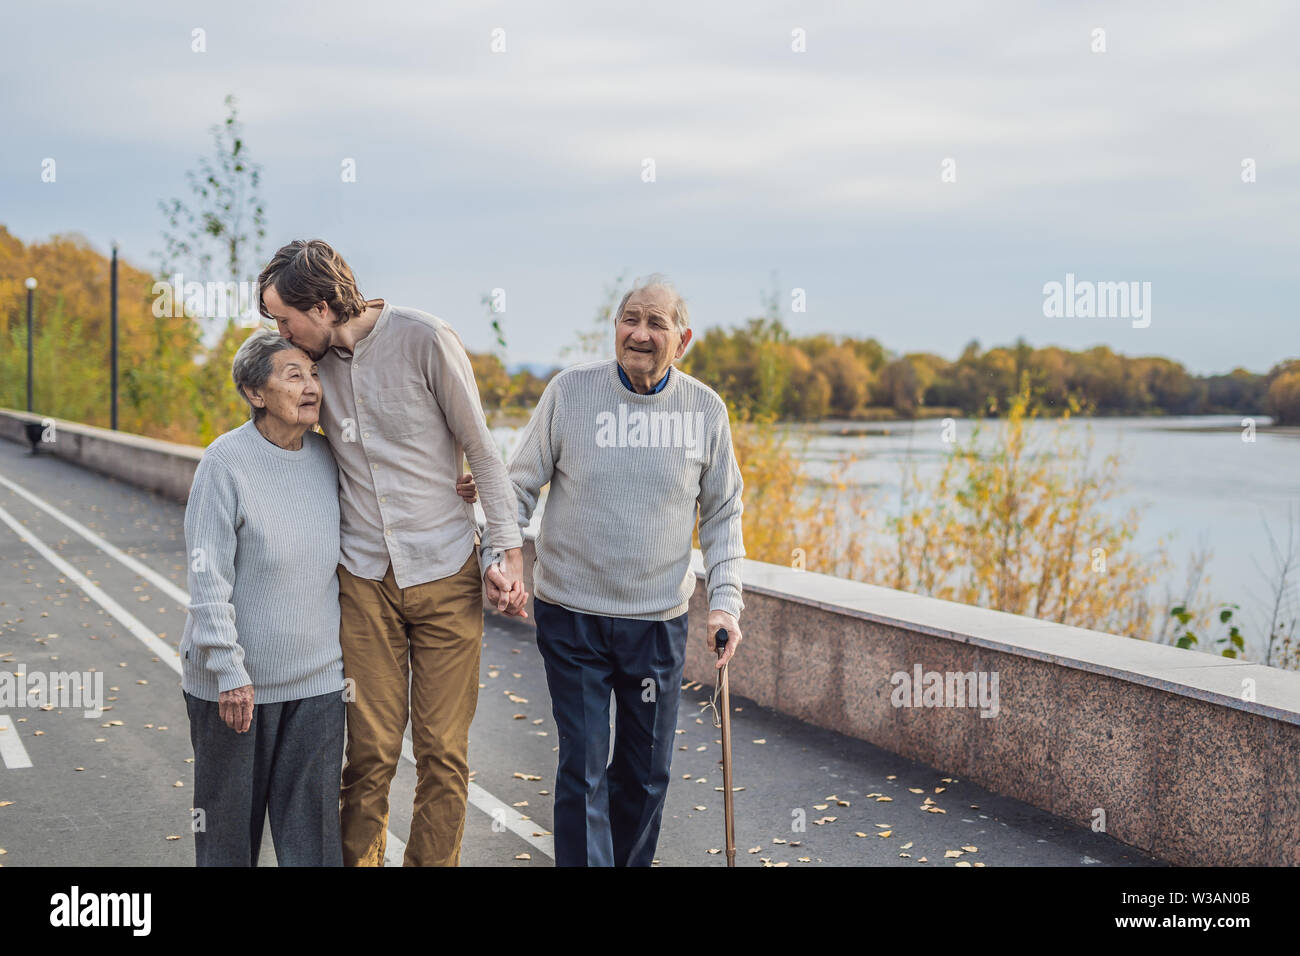 An elderly couple walks in the park with a male assistant or adult grandson. Caring for the elderly, volunteering - Stock Image